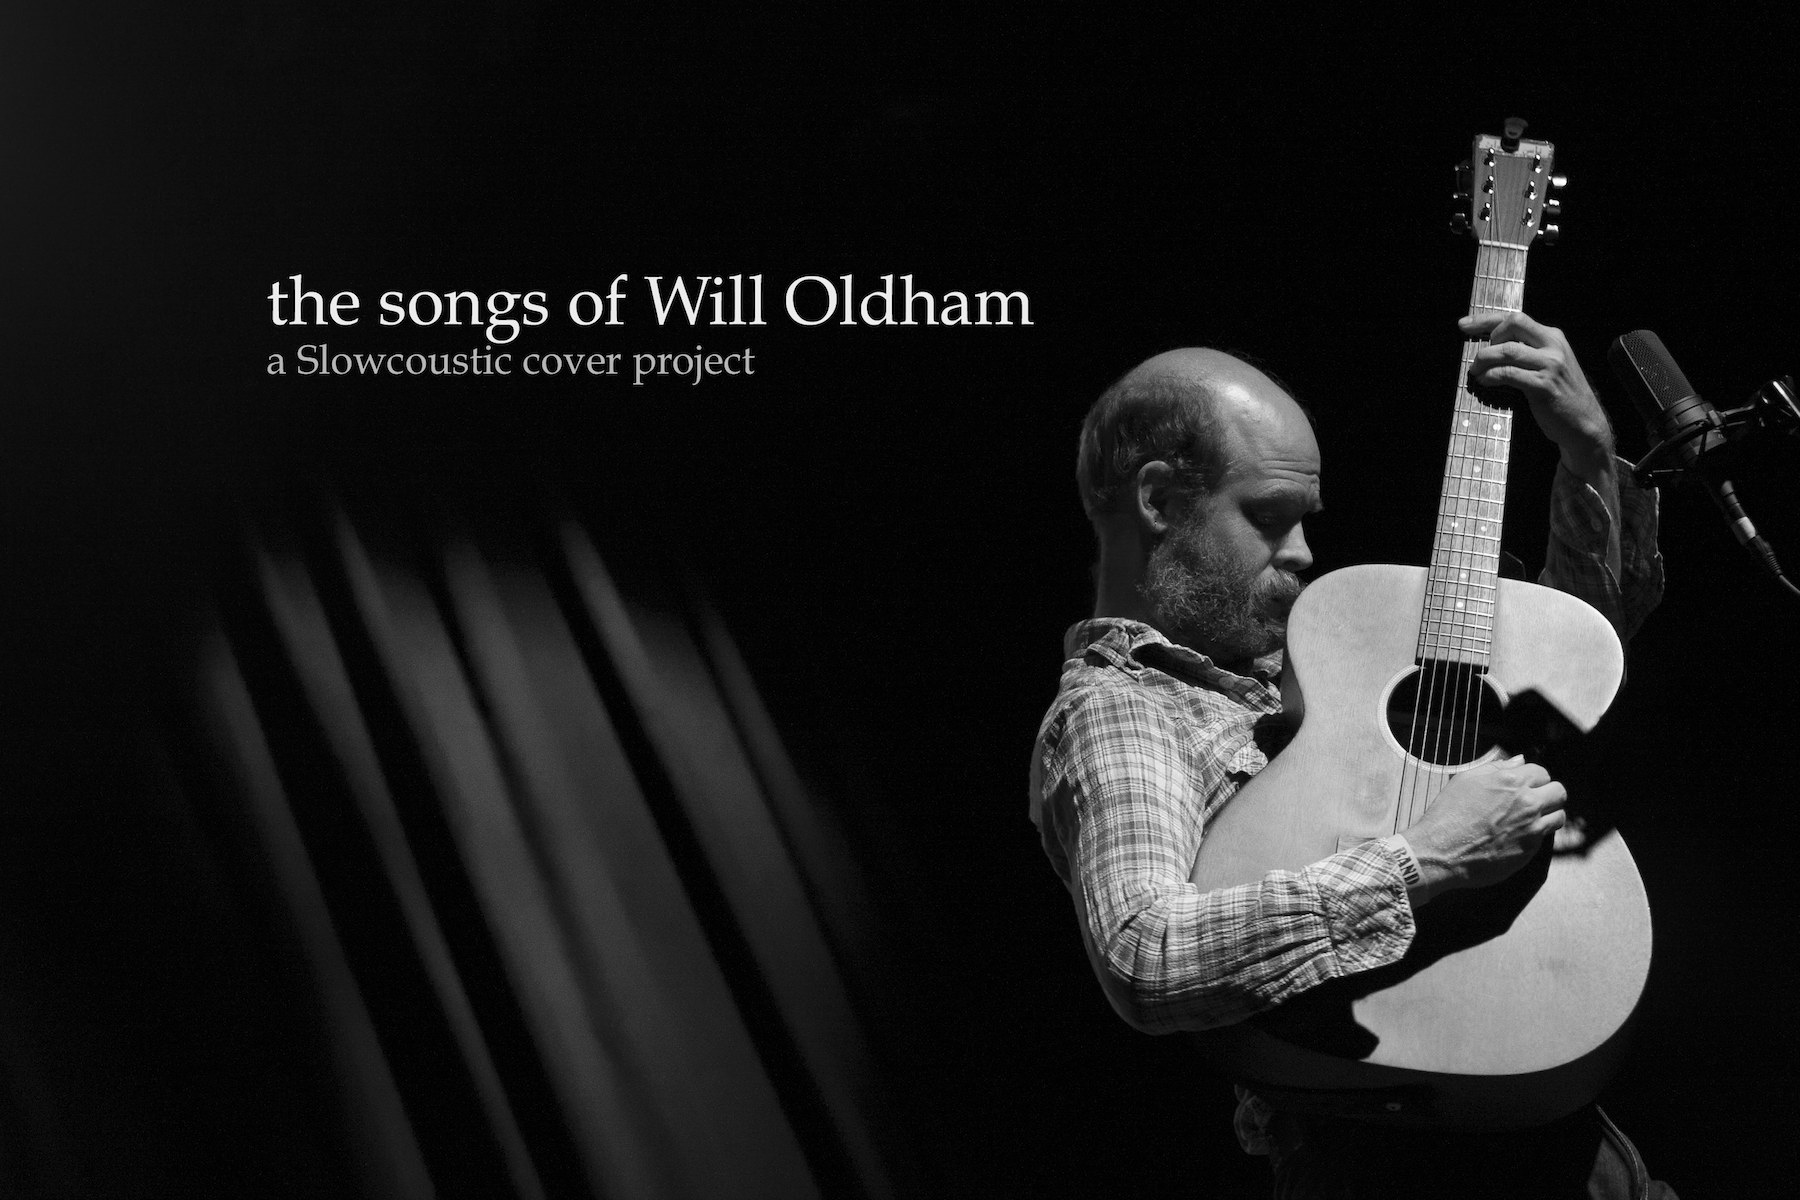 The Songs of Will Oldham - A Slowcoustic Cover Project